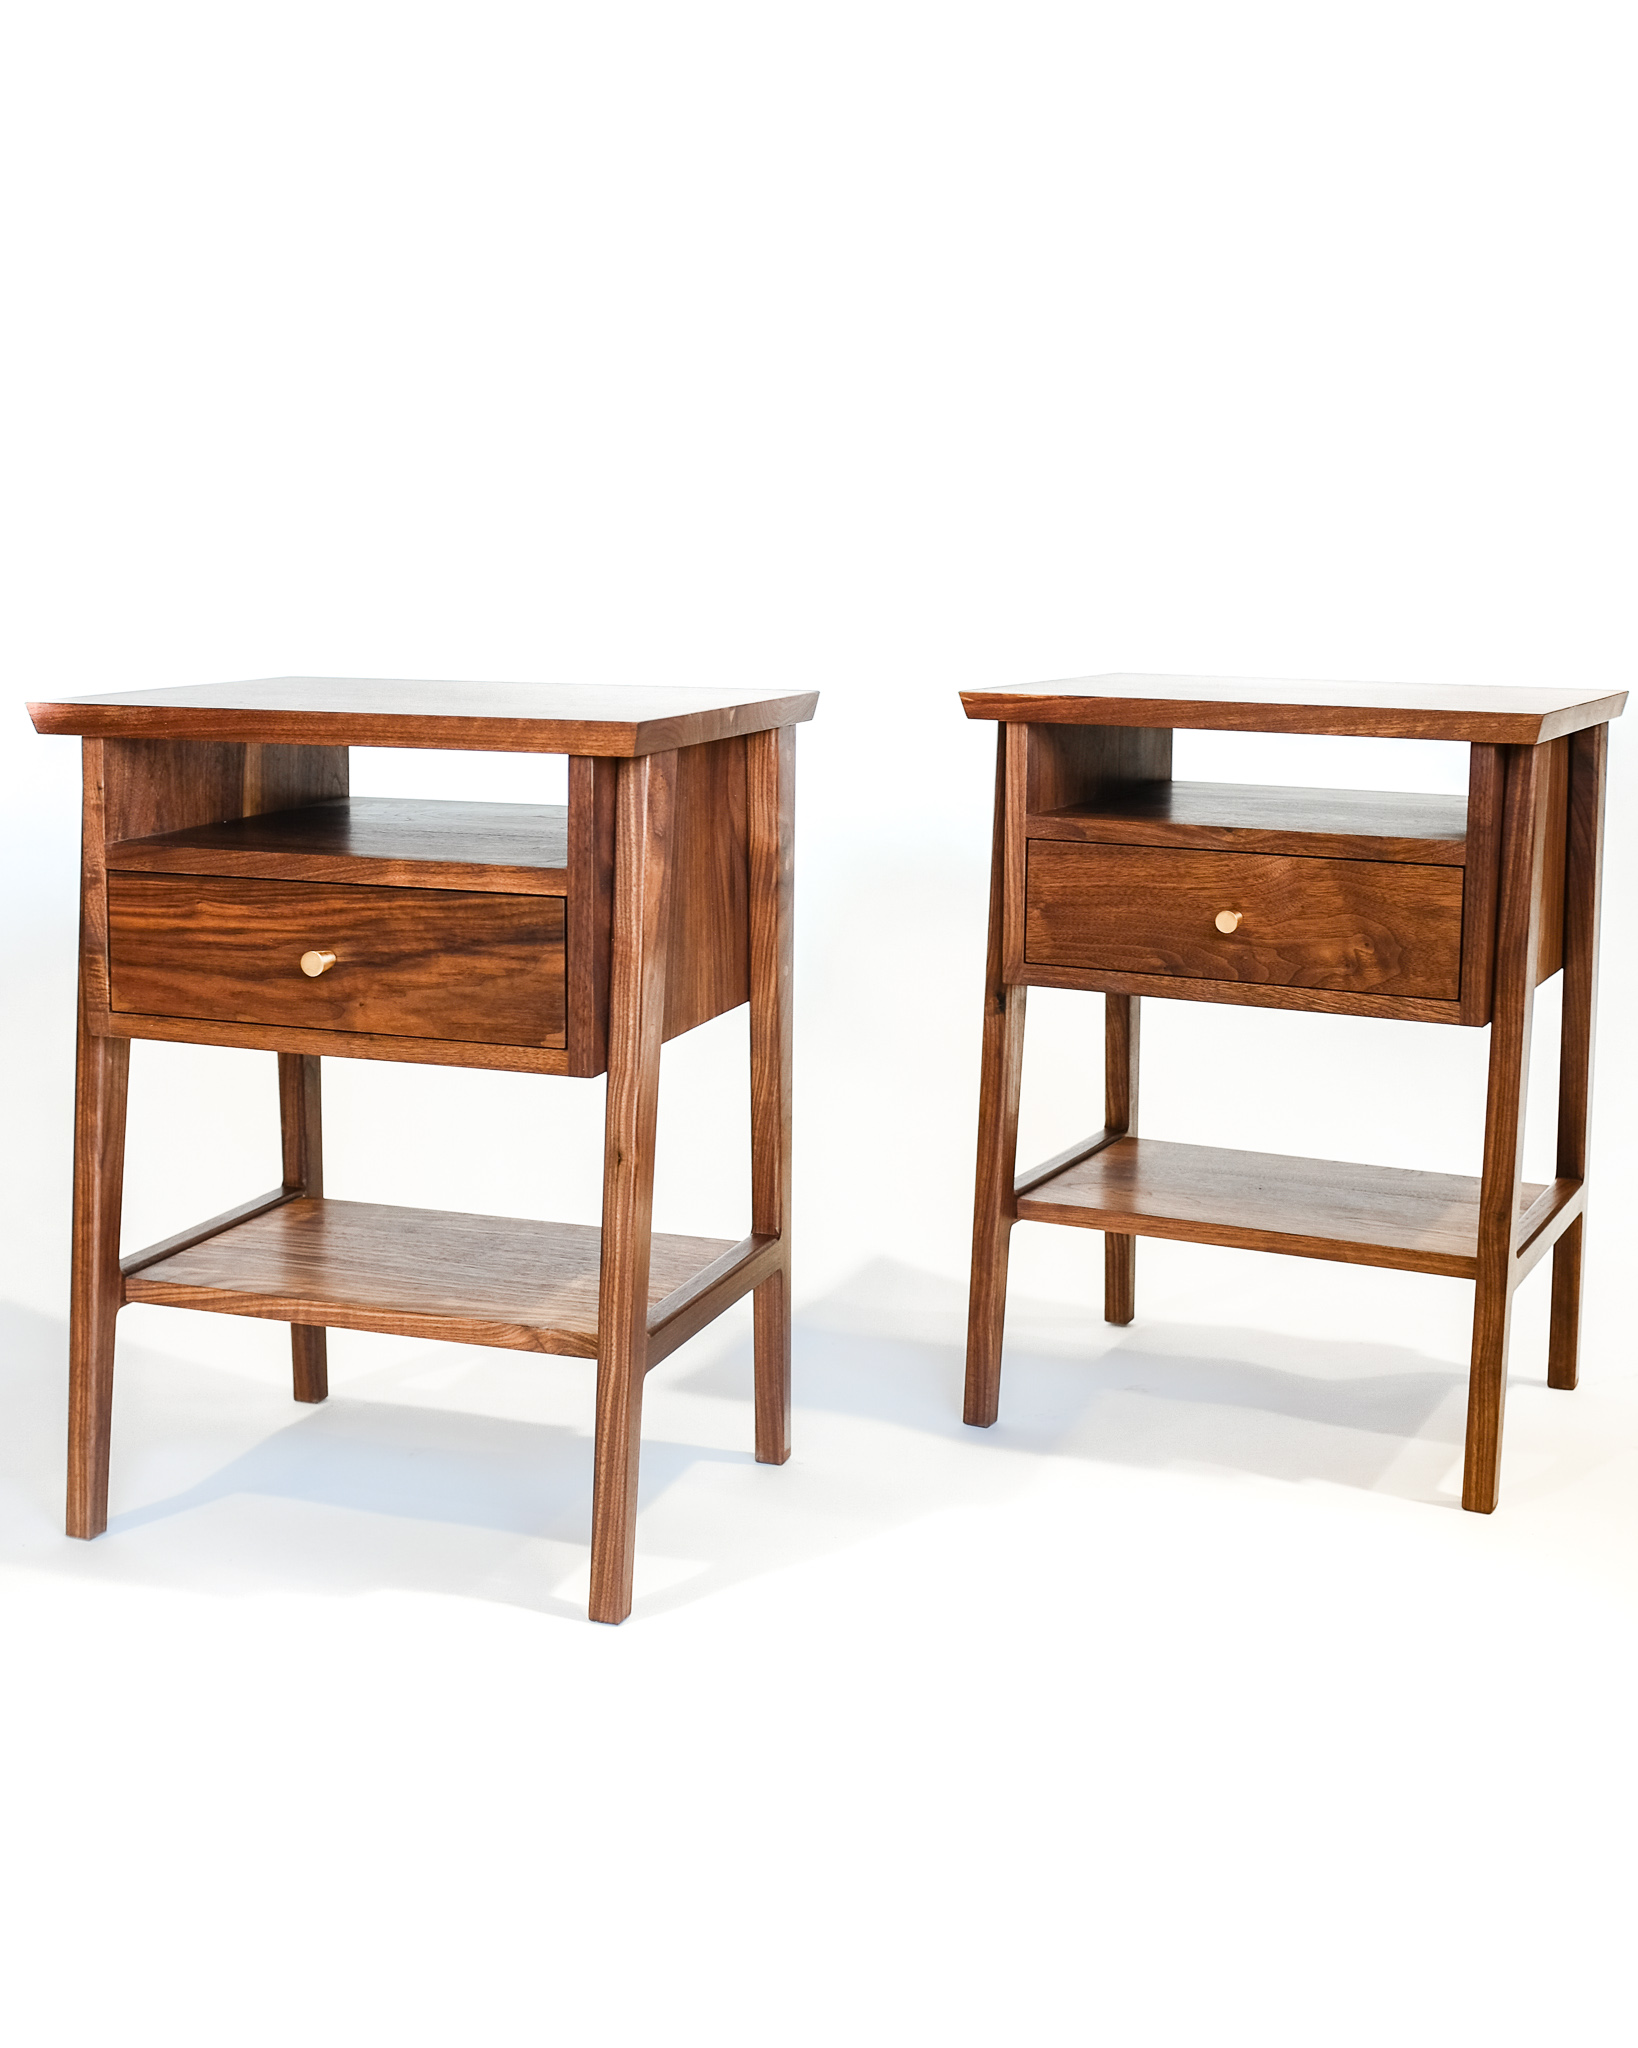 Walnut one drawer nightstands with brass pulls. Also available in white oak or maple.